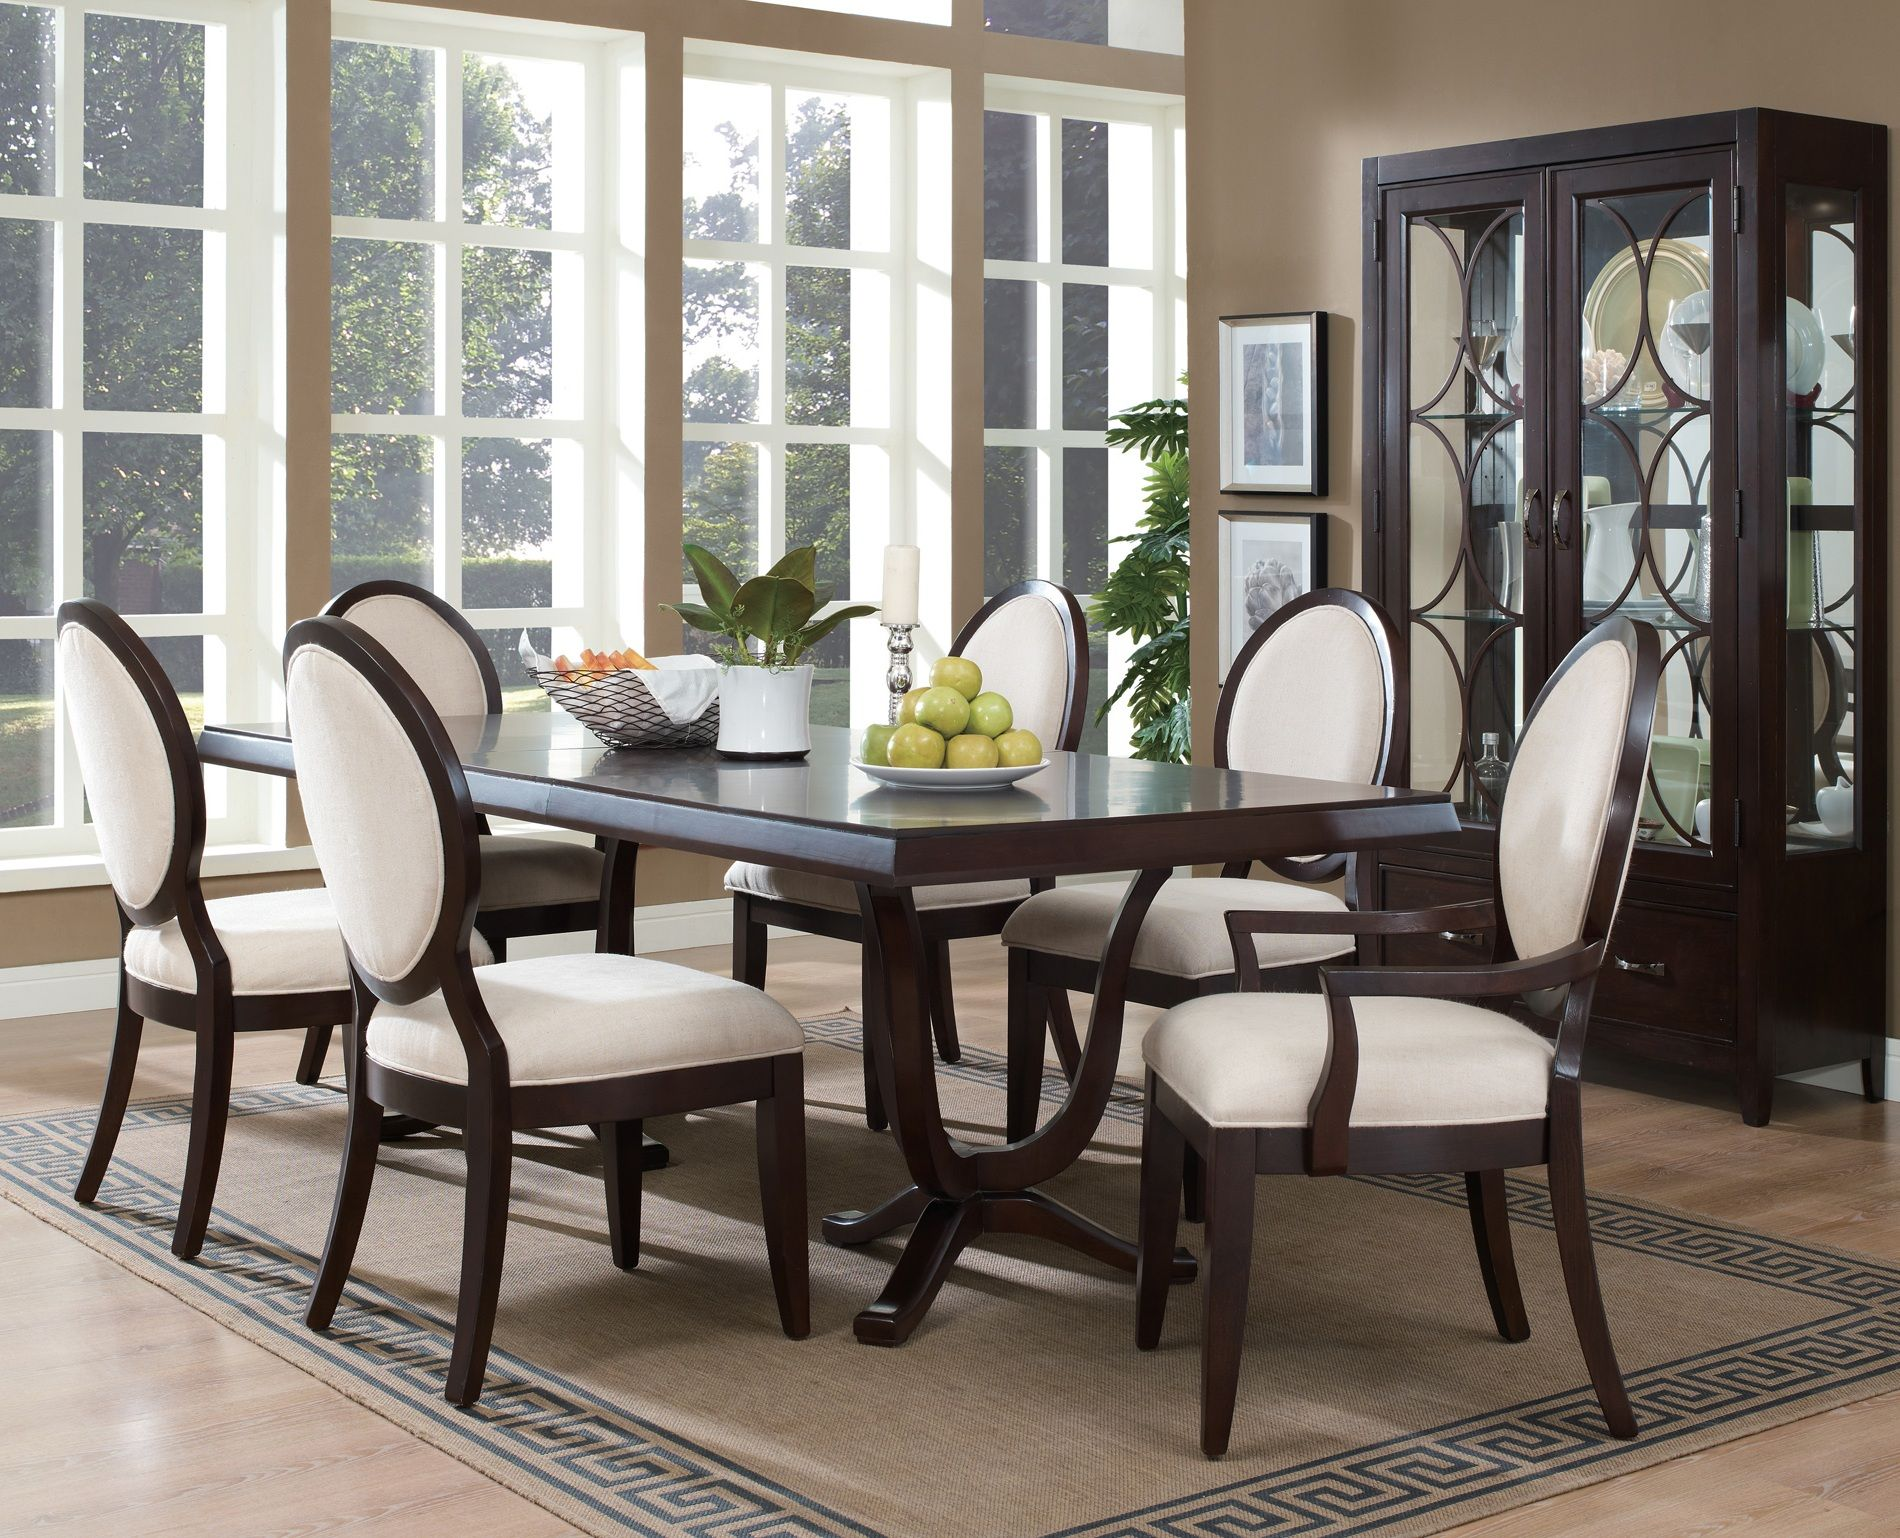 Elegant Table Luxury Dining Room Chairs Design Ideas Design